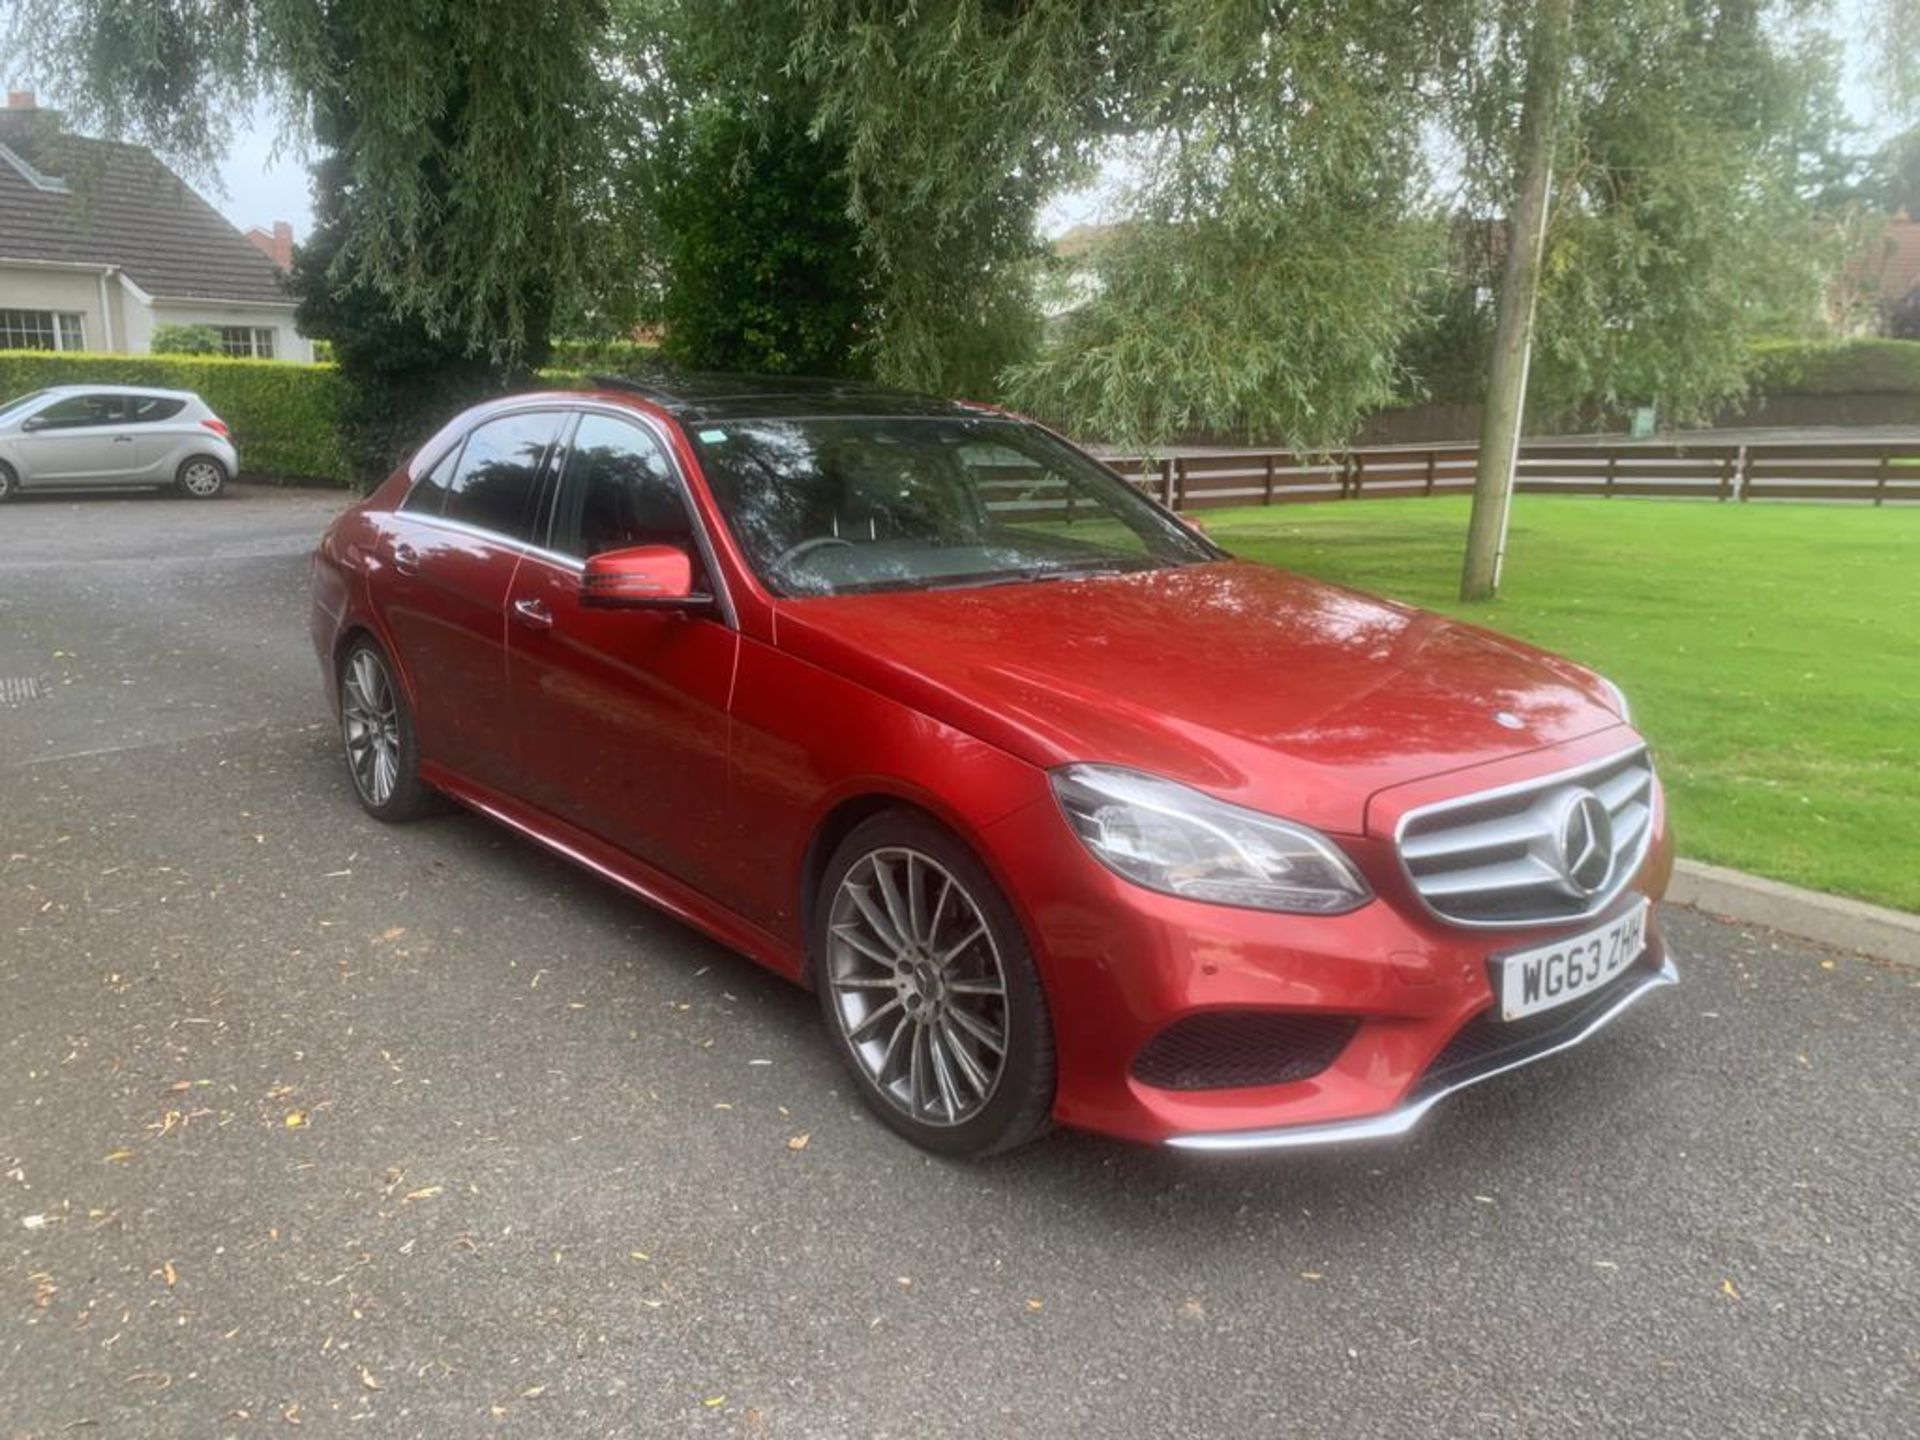 2014/63 REG MERCEDES-BENZ E300 AMG SPORT BLUETEC HYBRID 2.2 ELECTRIC DIESEL RED 4 DOOR SALOON